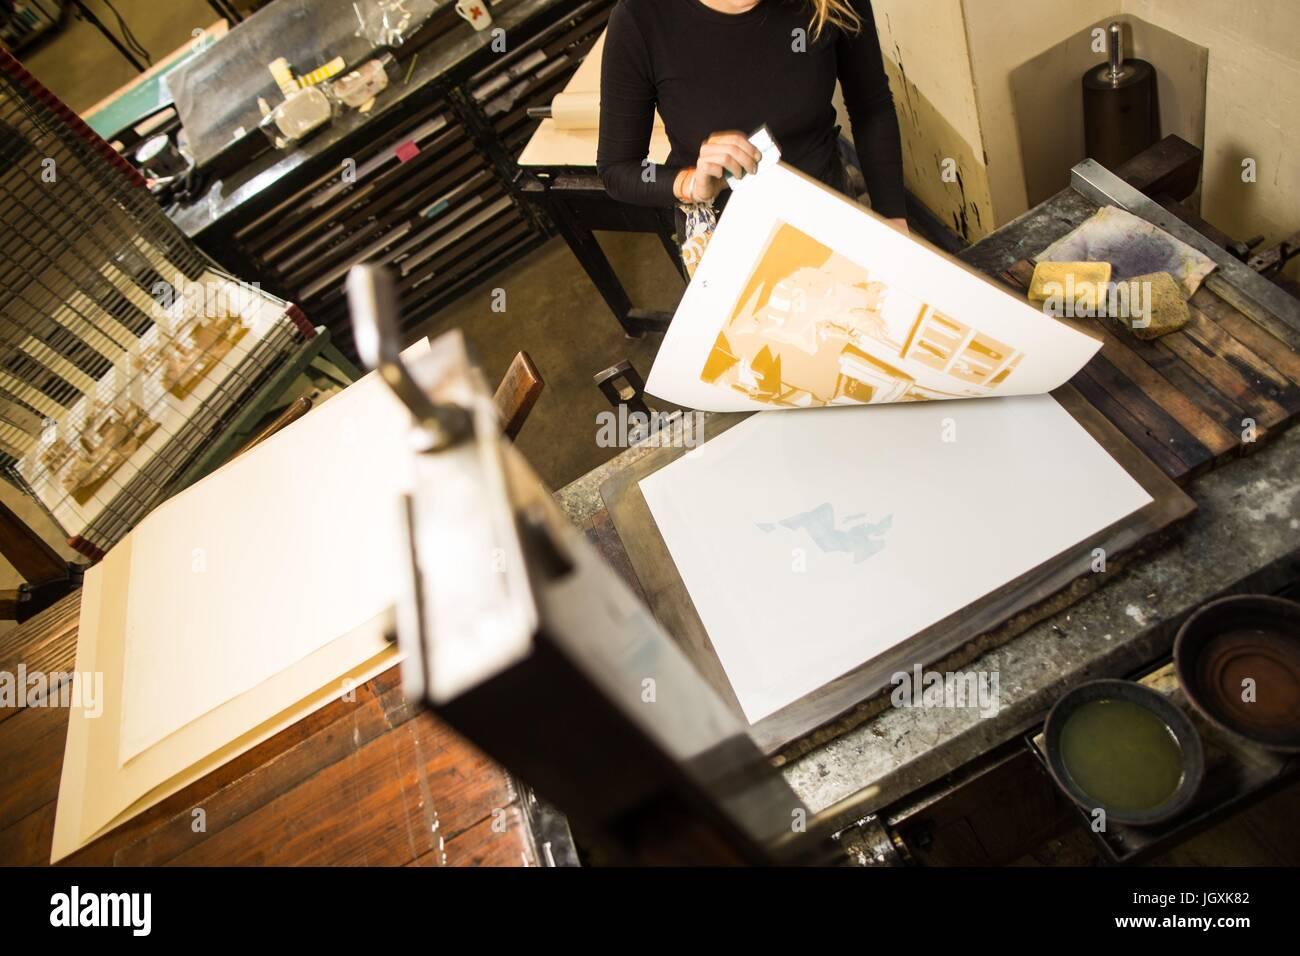 IMAGERIE D'EPINAL PRINTING HOUSE,(88) VOSGES,Francia orientale Immagini Stock